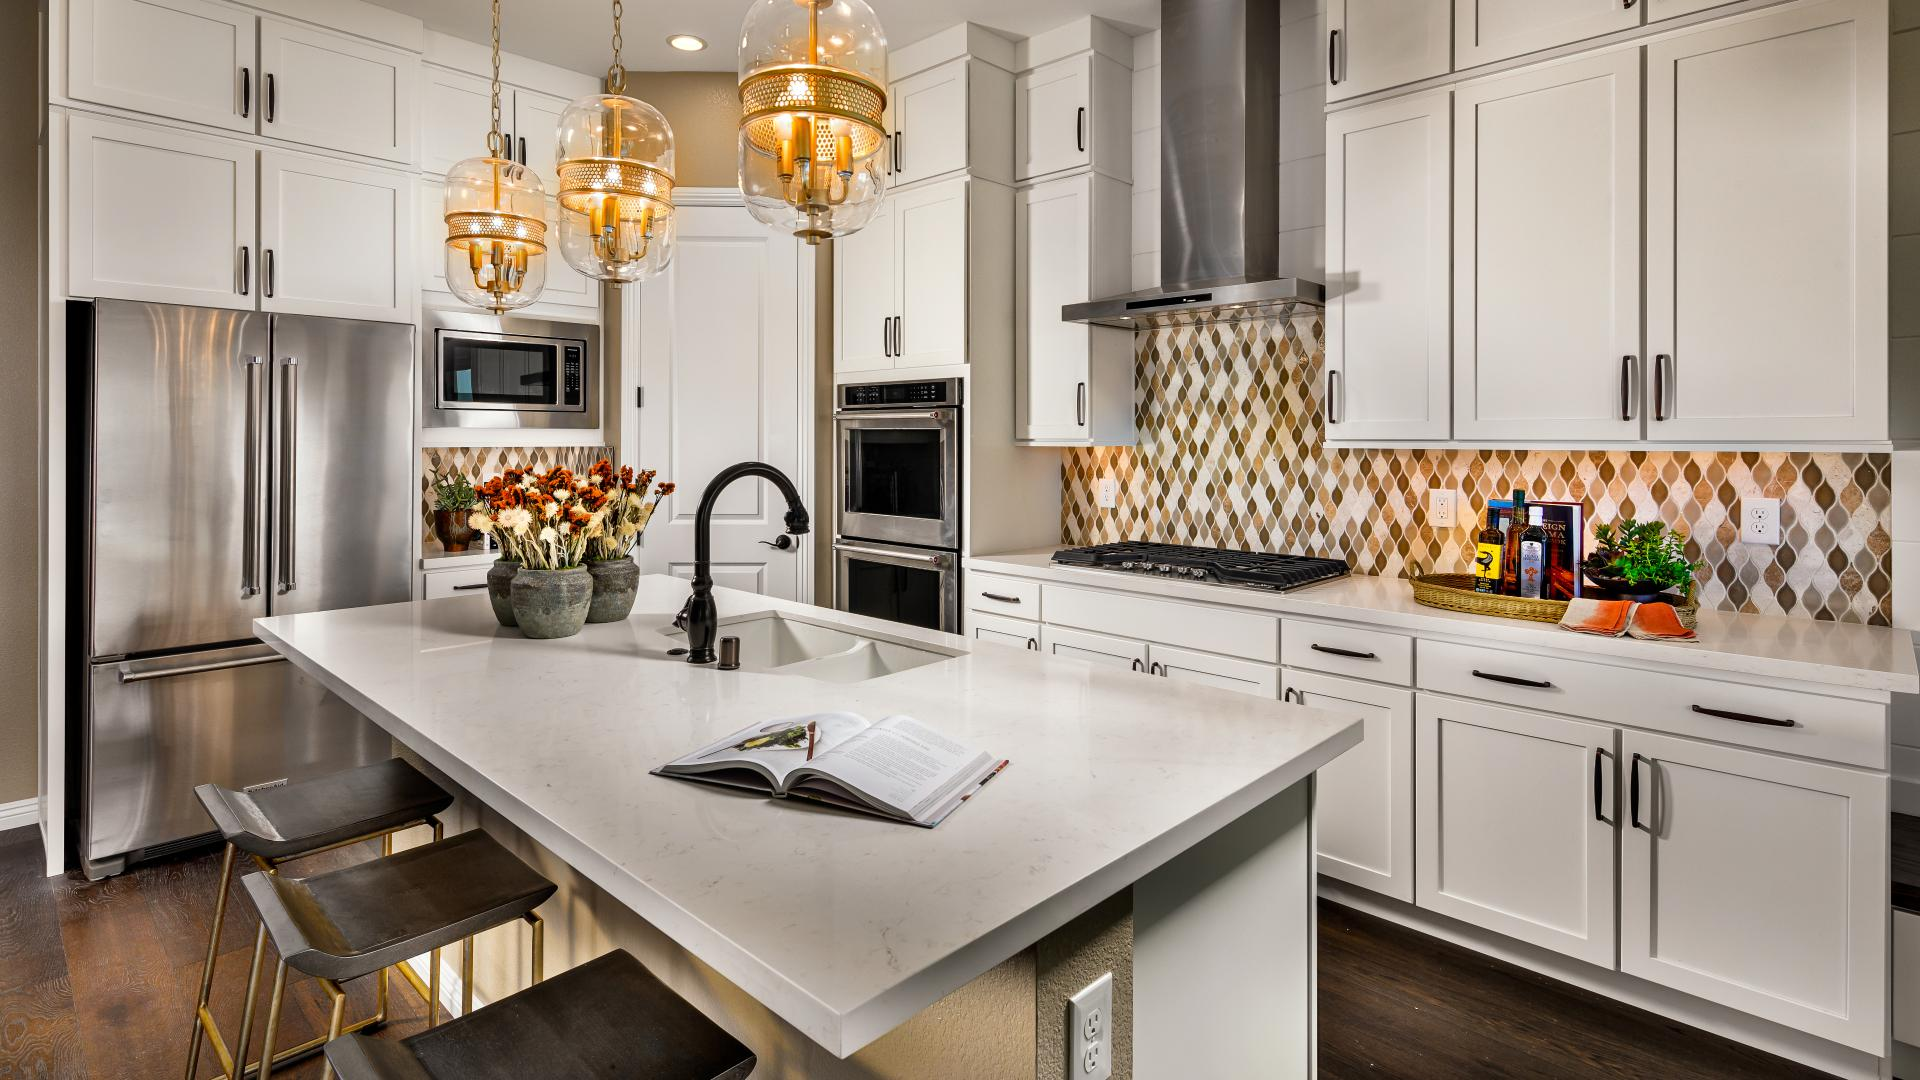 Ample counterspace and center island in this gourmet kitchen